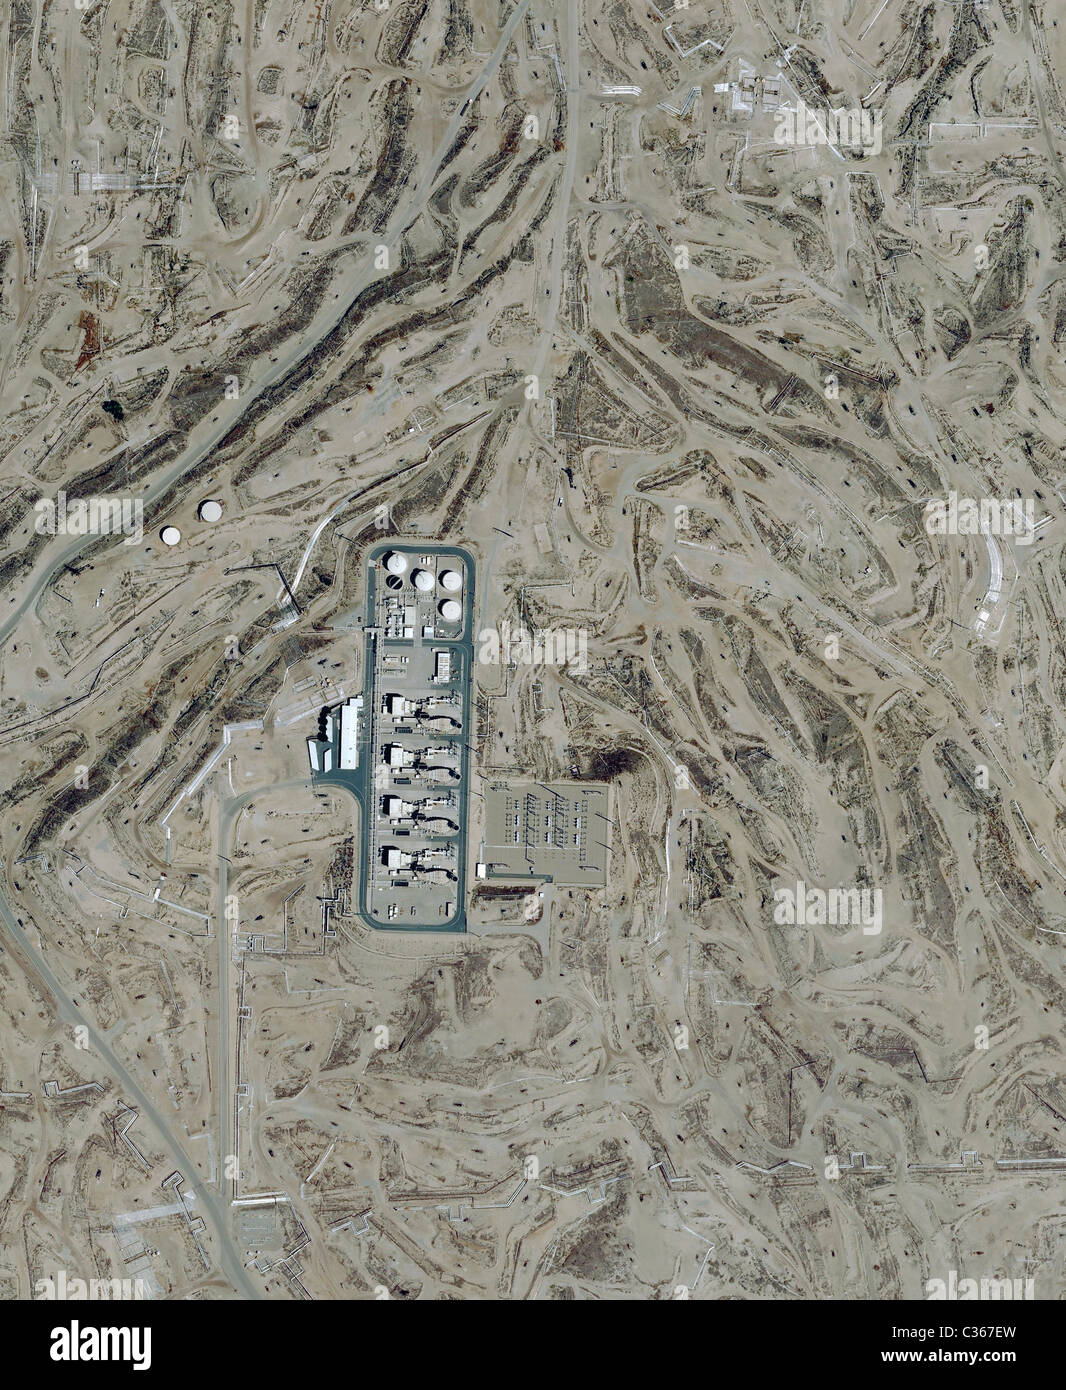 Aerial Map View Above Kern River Oil Field San Joaquin Valley Bakersfield Oildale California Stock